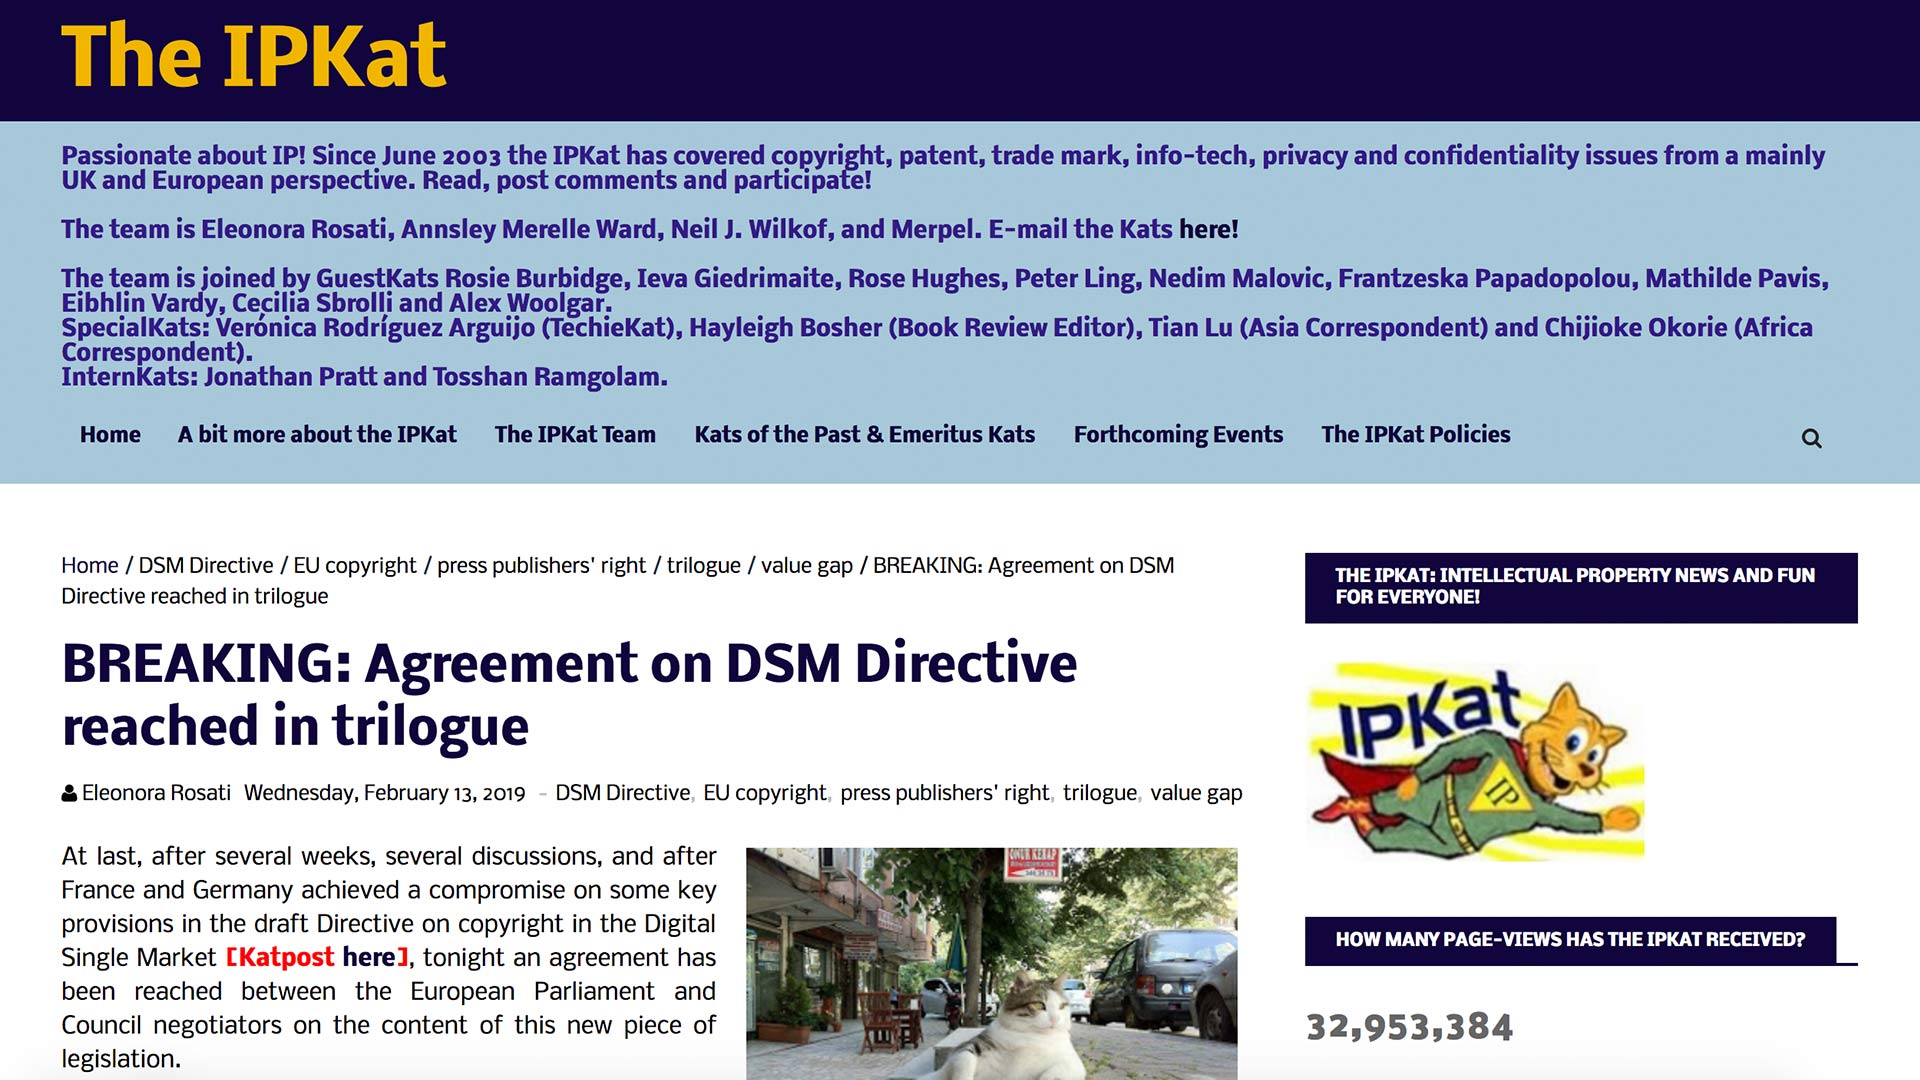 Fairness Rocks News BREAKING: Agreement on DSM Directive reached in trilogue